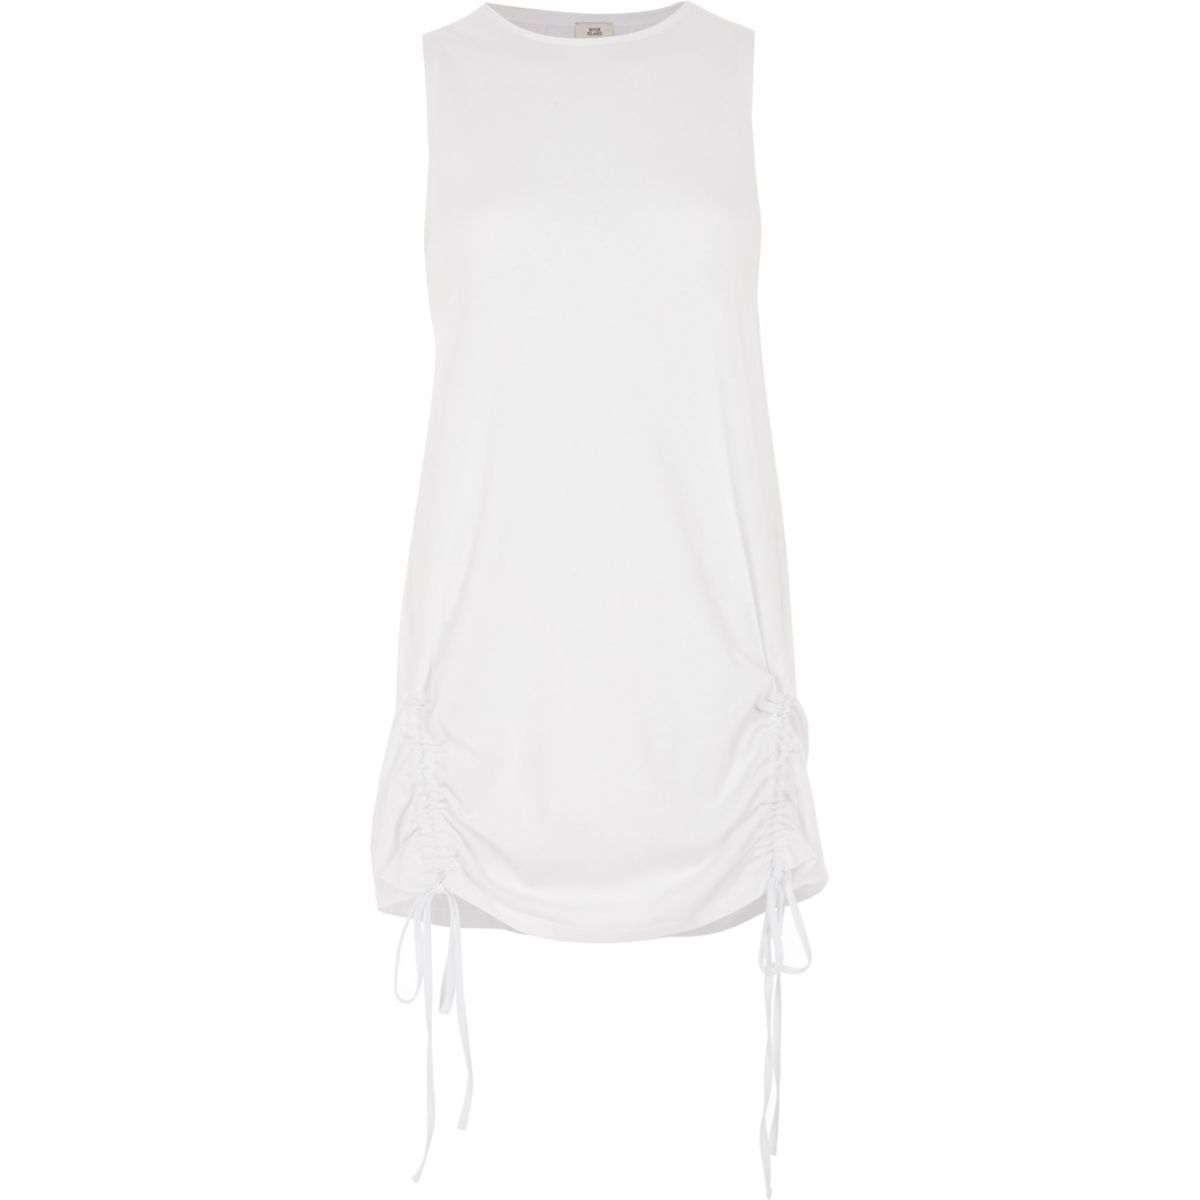 White ruched hem tank top